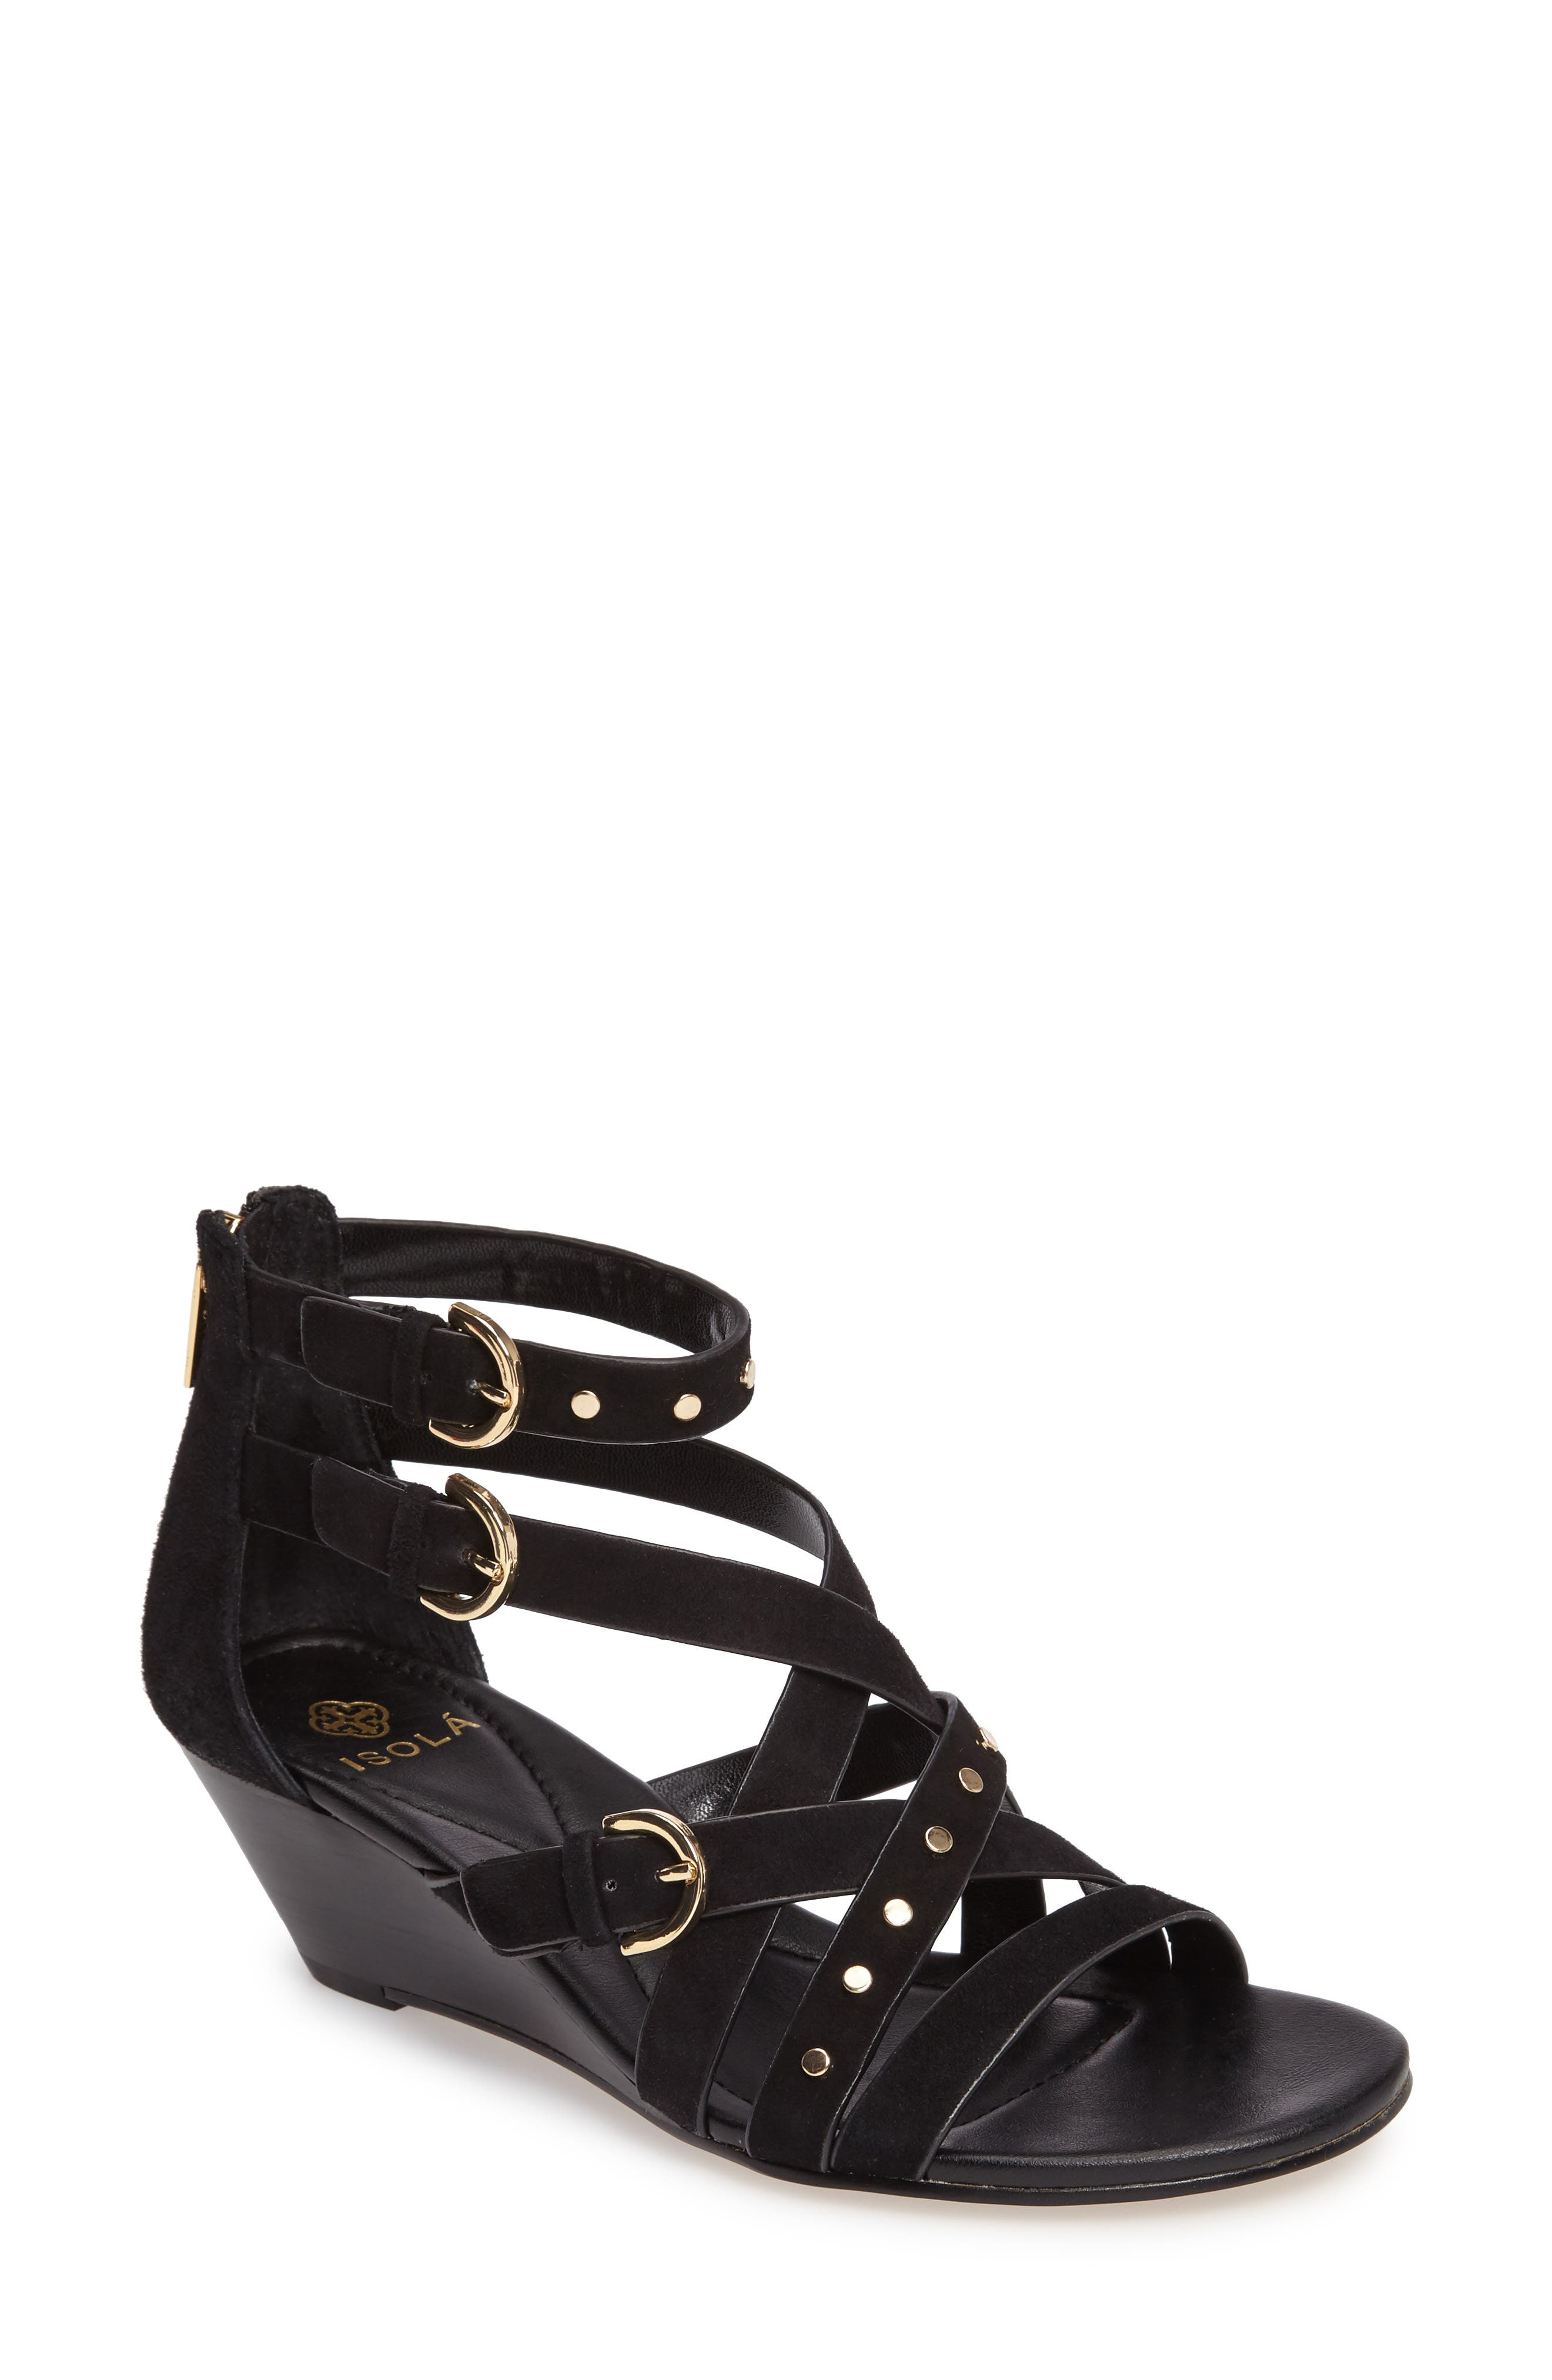 Petra Strappy Wedge Sandal,                         Main,                         color, BLACK LEATHER